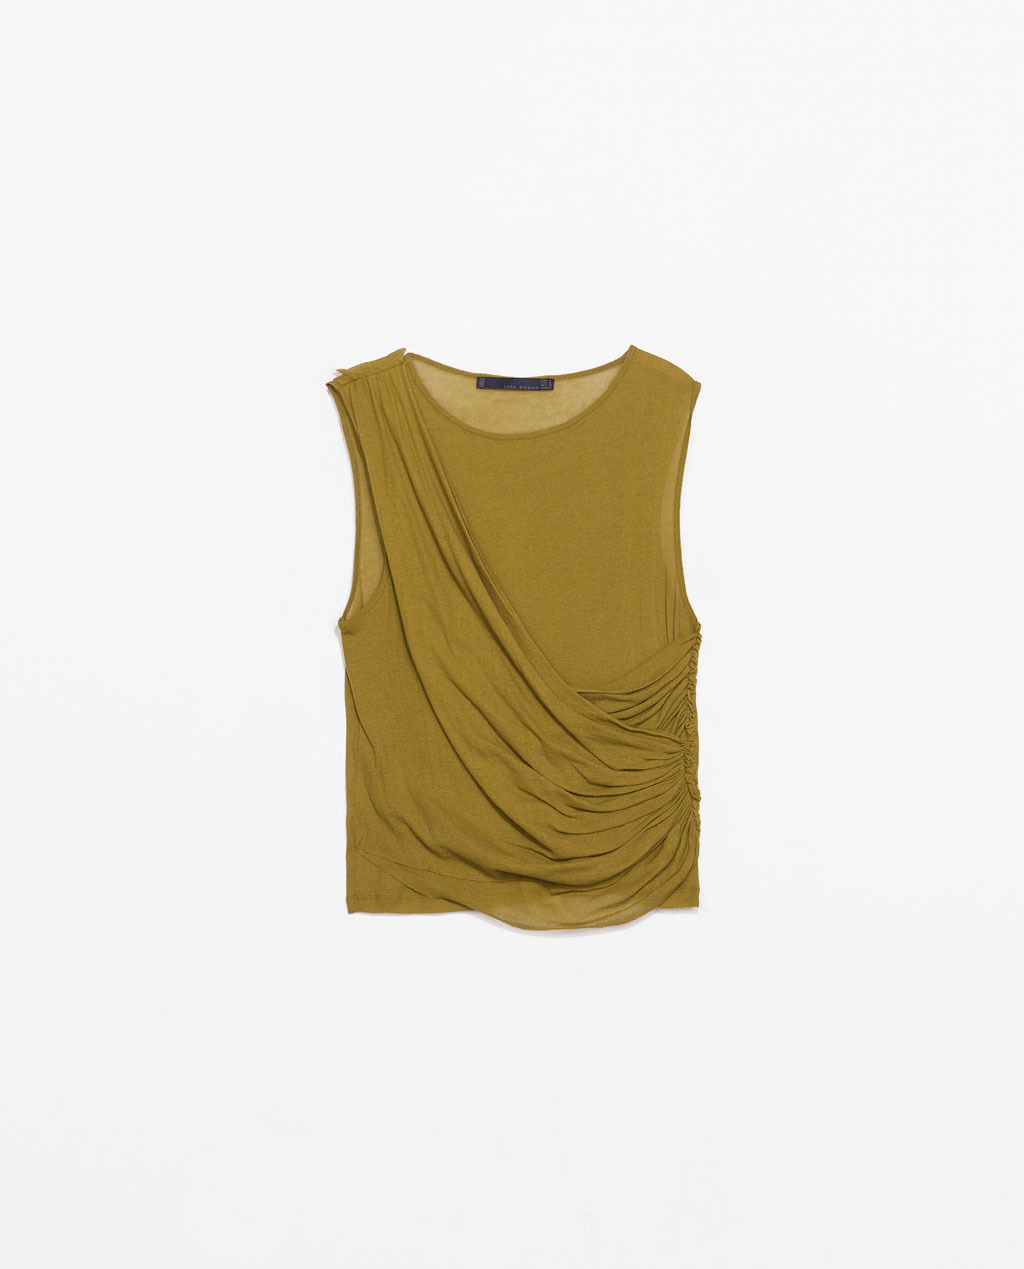 Draped Studio T Shirt - neckline: round neck; pattern: plain; sleeve style: sleeveless; waist detail: twist front waist detail/nipped in at waist on one side/soft pleats/draping/ruching/gathering waist detail; predominant colour: khaki; occasions: casual, evening, creative work; length: standard; style: top; fibres: cotton - 100%; fit: body skimming; shoulder detail: flat/draping pleats/ruching/gathering at shoulder; sleeve length: sleeveless; pattern type: fabric; texture group: jersey - stretchy/drapey; season: s/s 2014